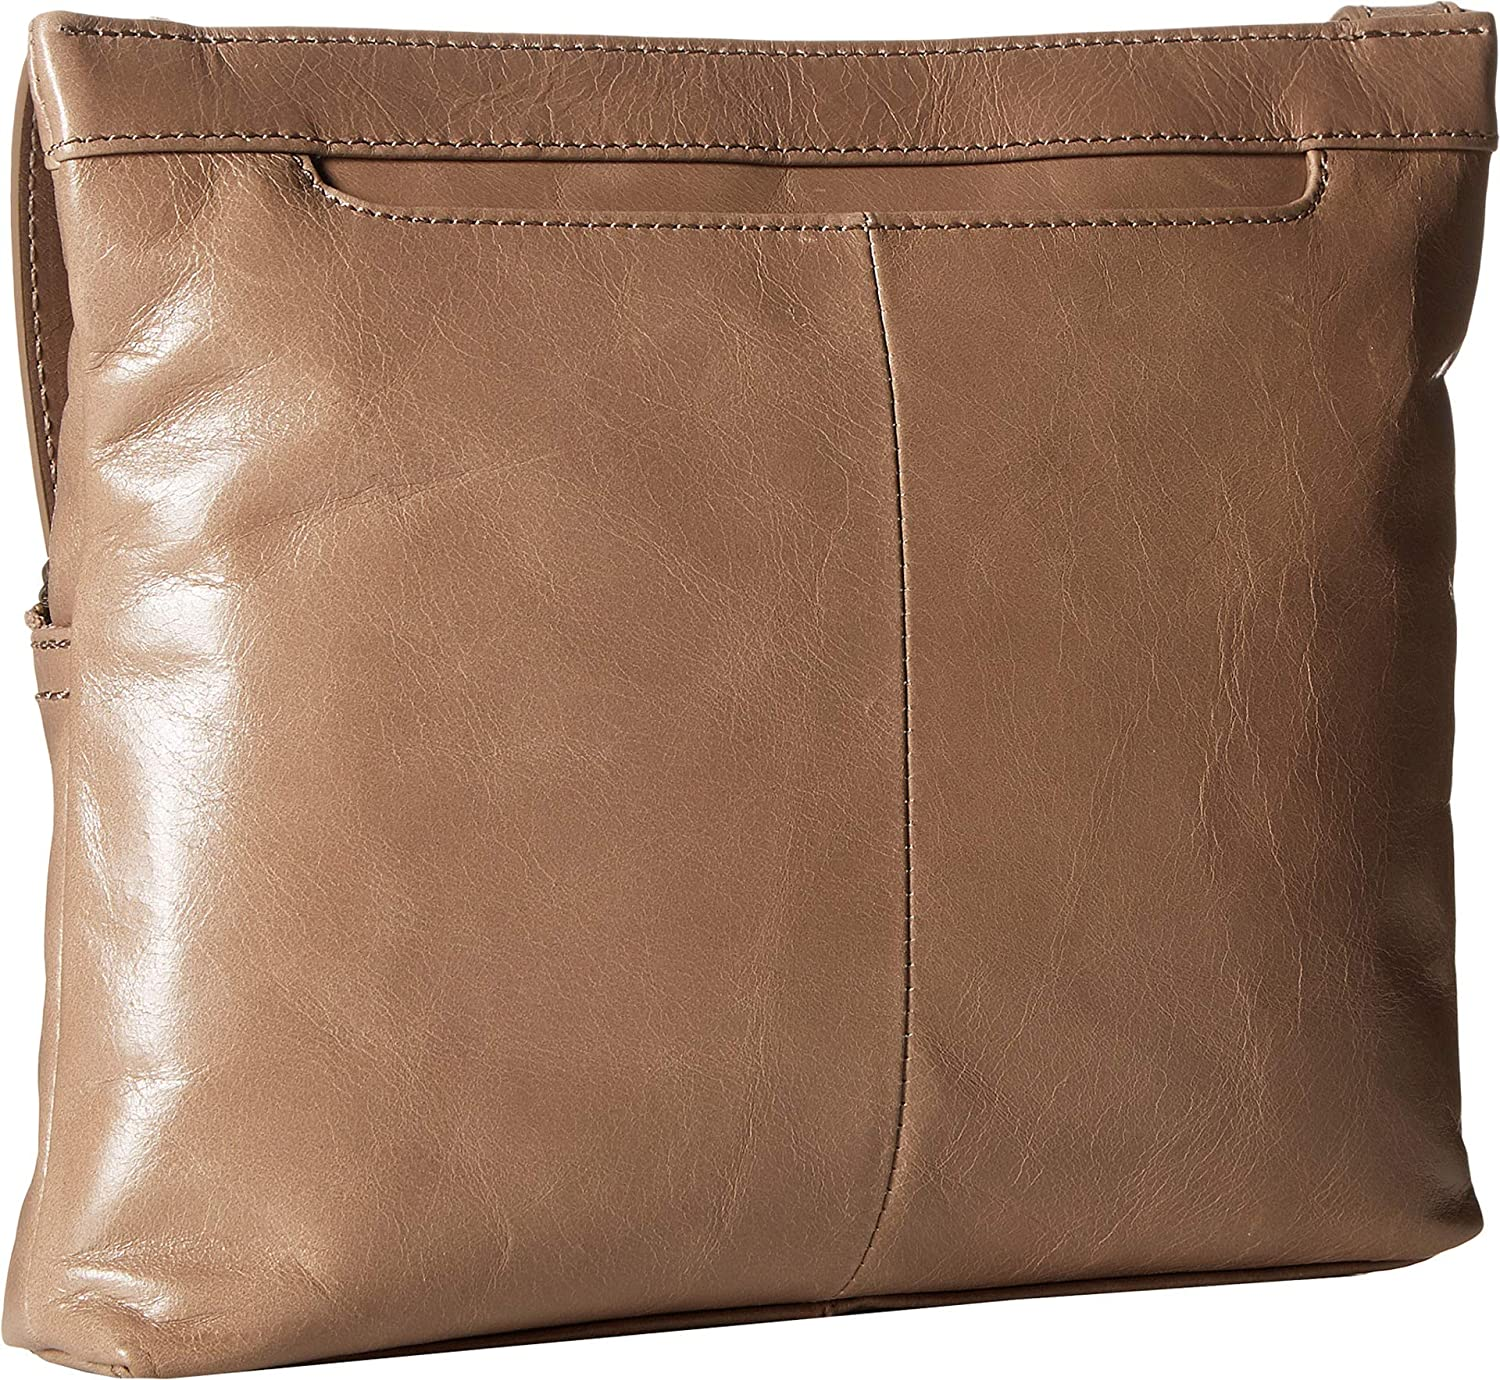 HOBO Vintage Cassie Small Cross-Body Handbag